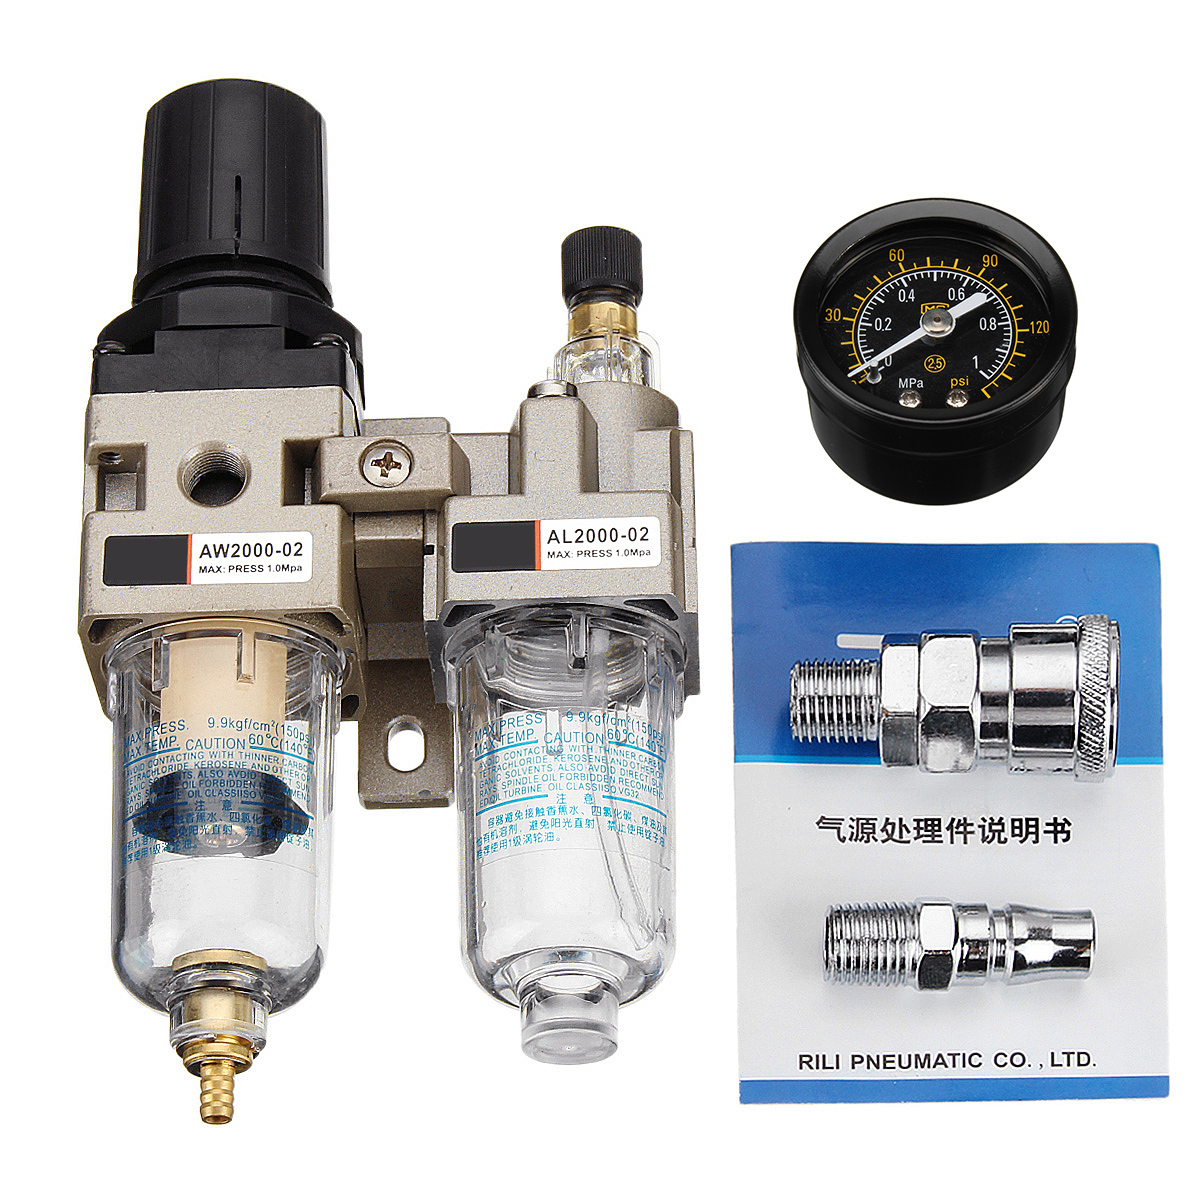 Central Pneumatic Air Compressor Reviews >> 150Psi Manual Pneumatic Air Pressure Filter Regulator Compressor Oil Water Separator | Alexnld.com